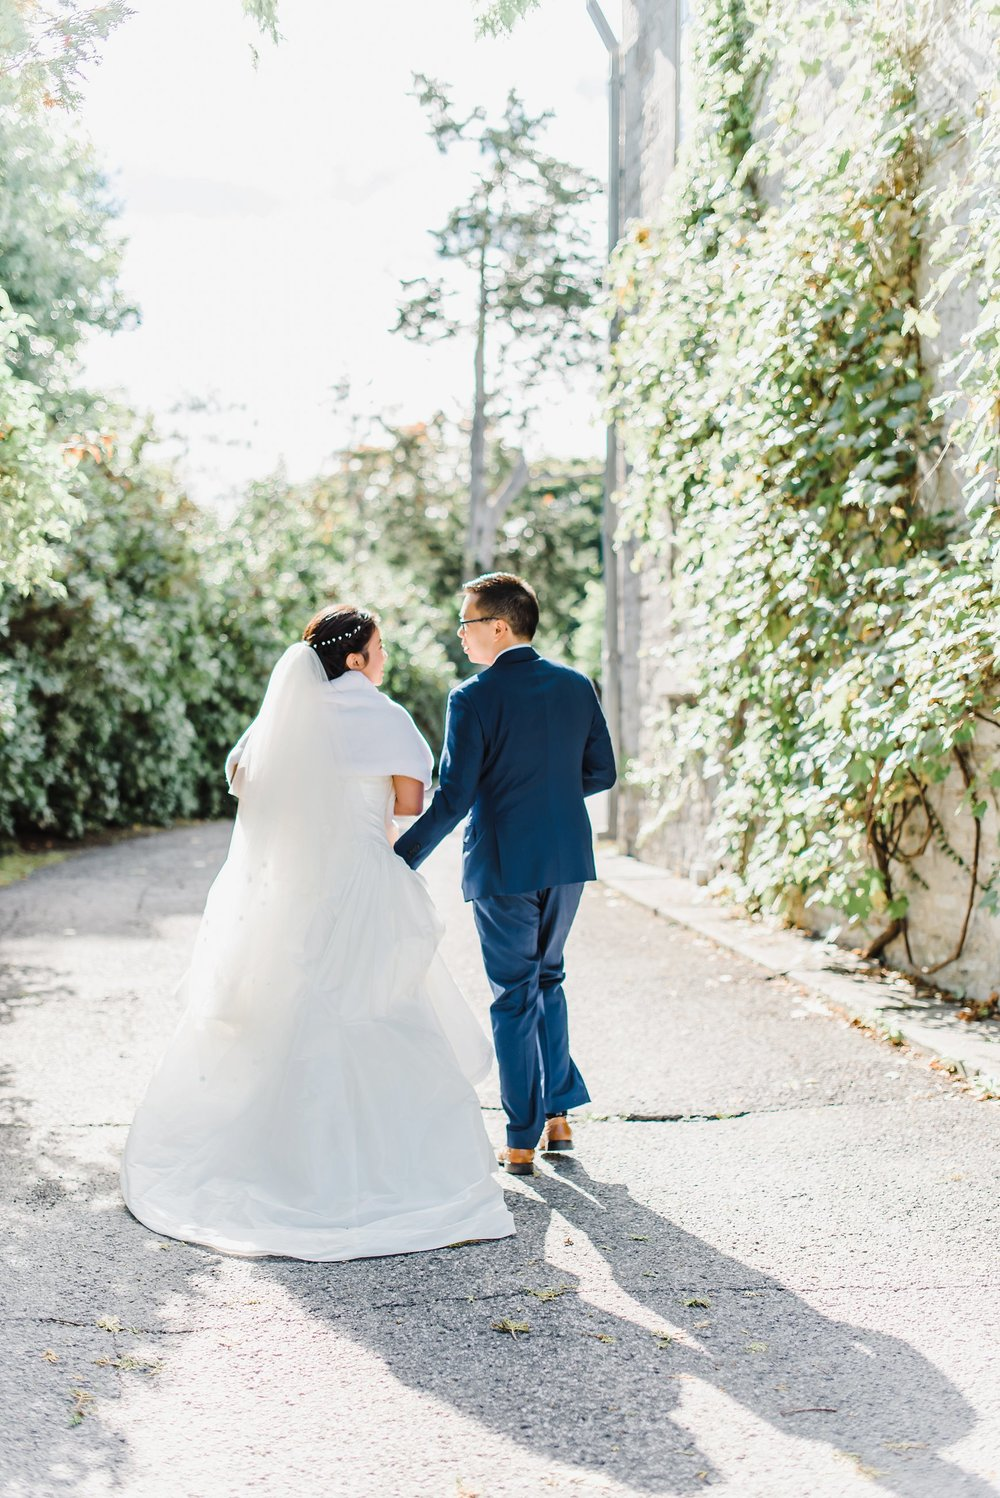 A tornado struck the night before, but that didn't stop Maxine and Felix from saying their I dos the next day. They celebrated at Beckta eating the best waffles and freshest fruit at their  brunch wedding.